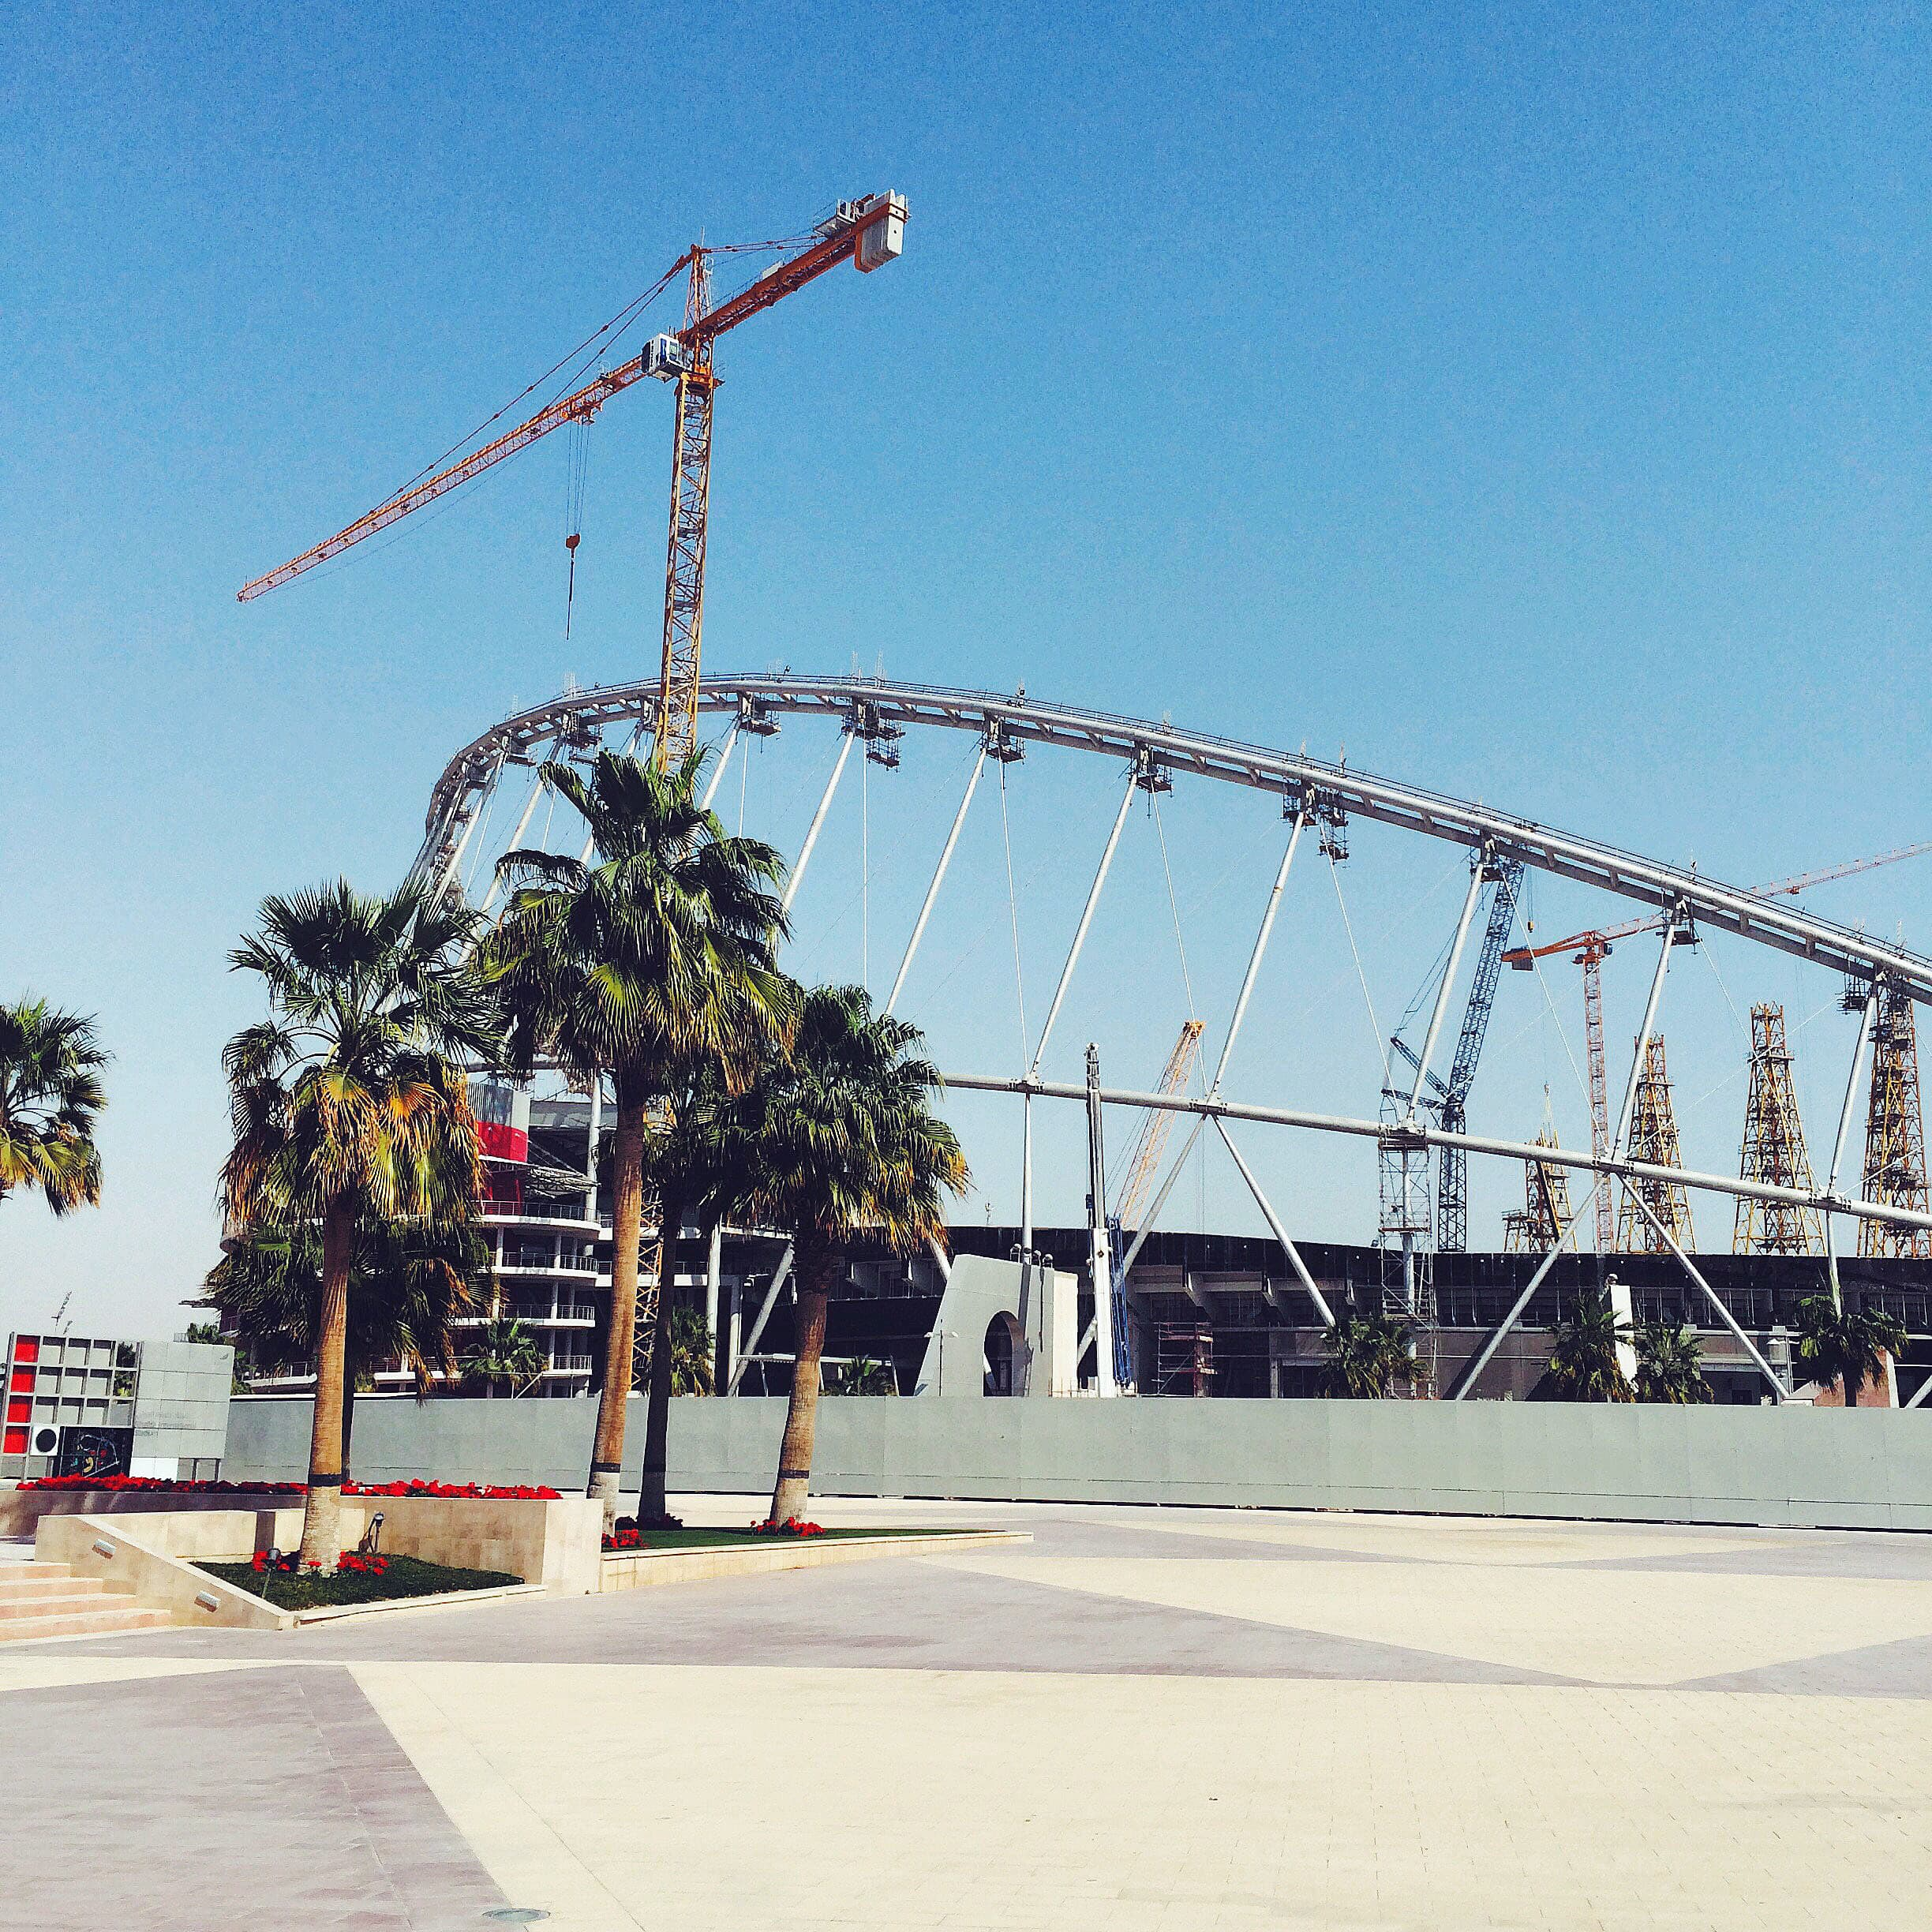 A football stadium under construction in Doha for the 2022 FIFA World Cup.